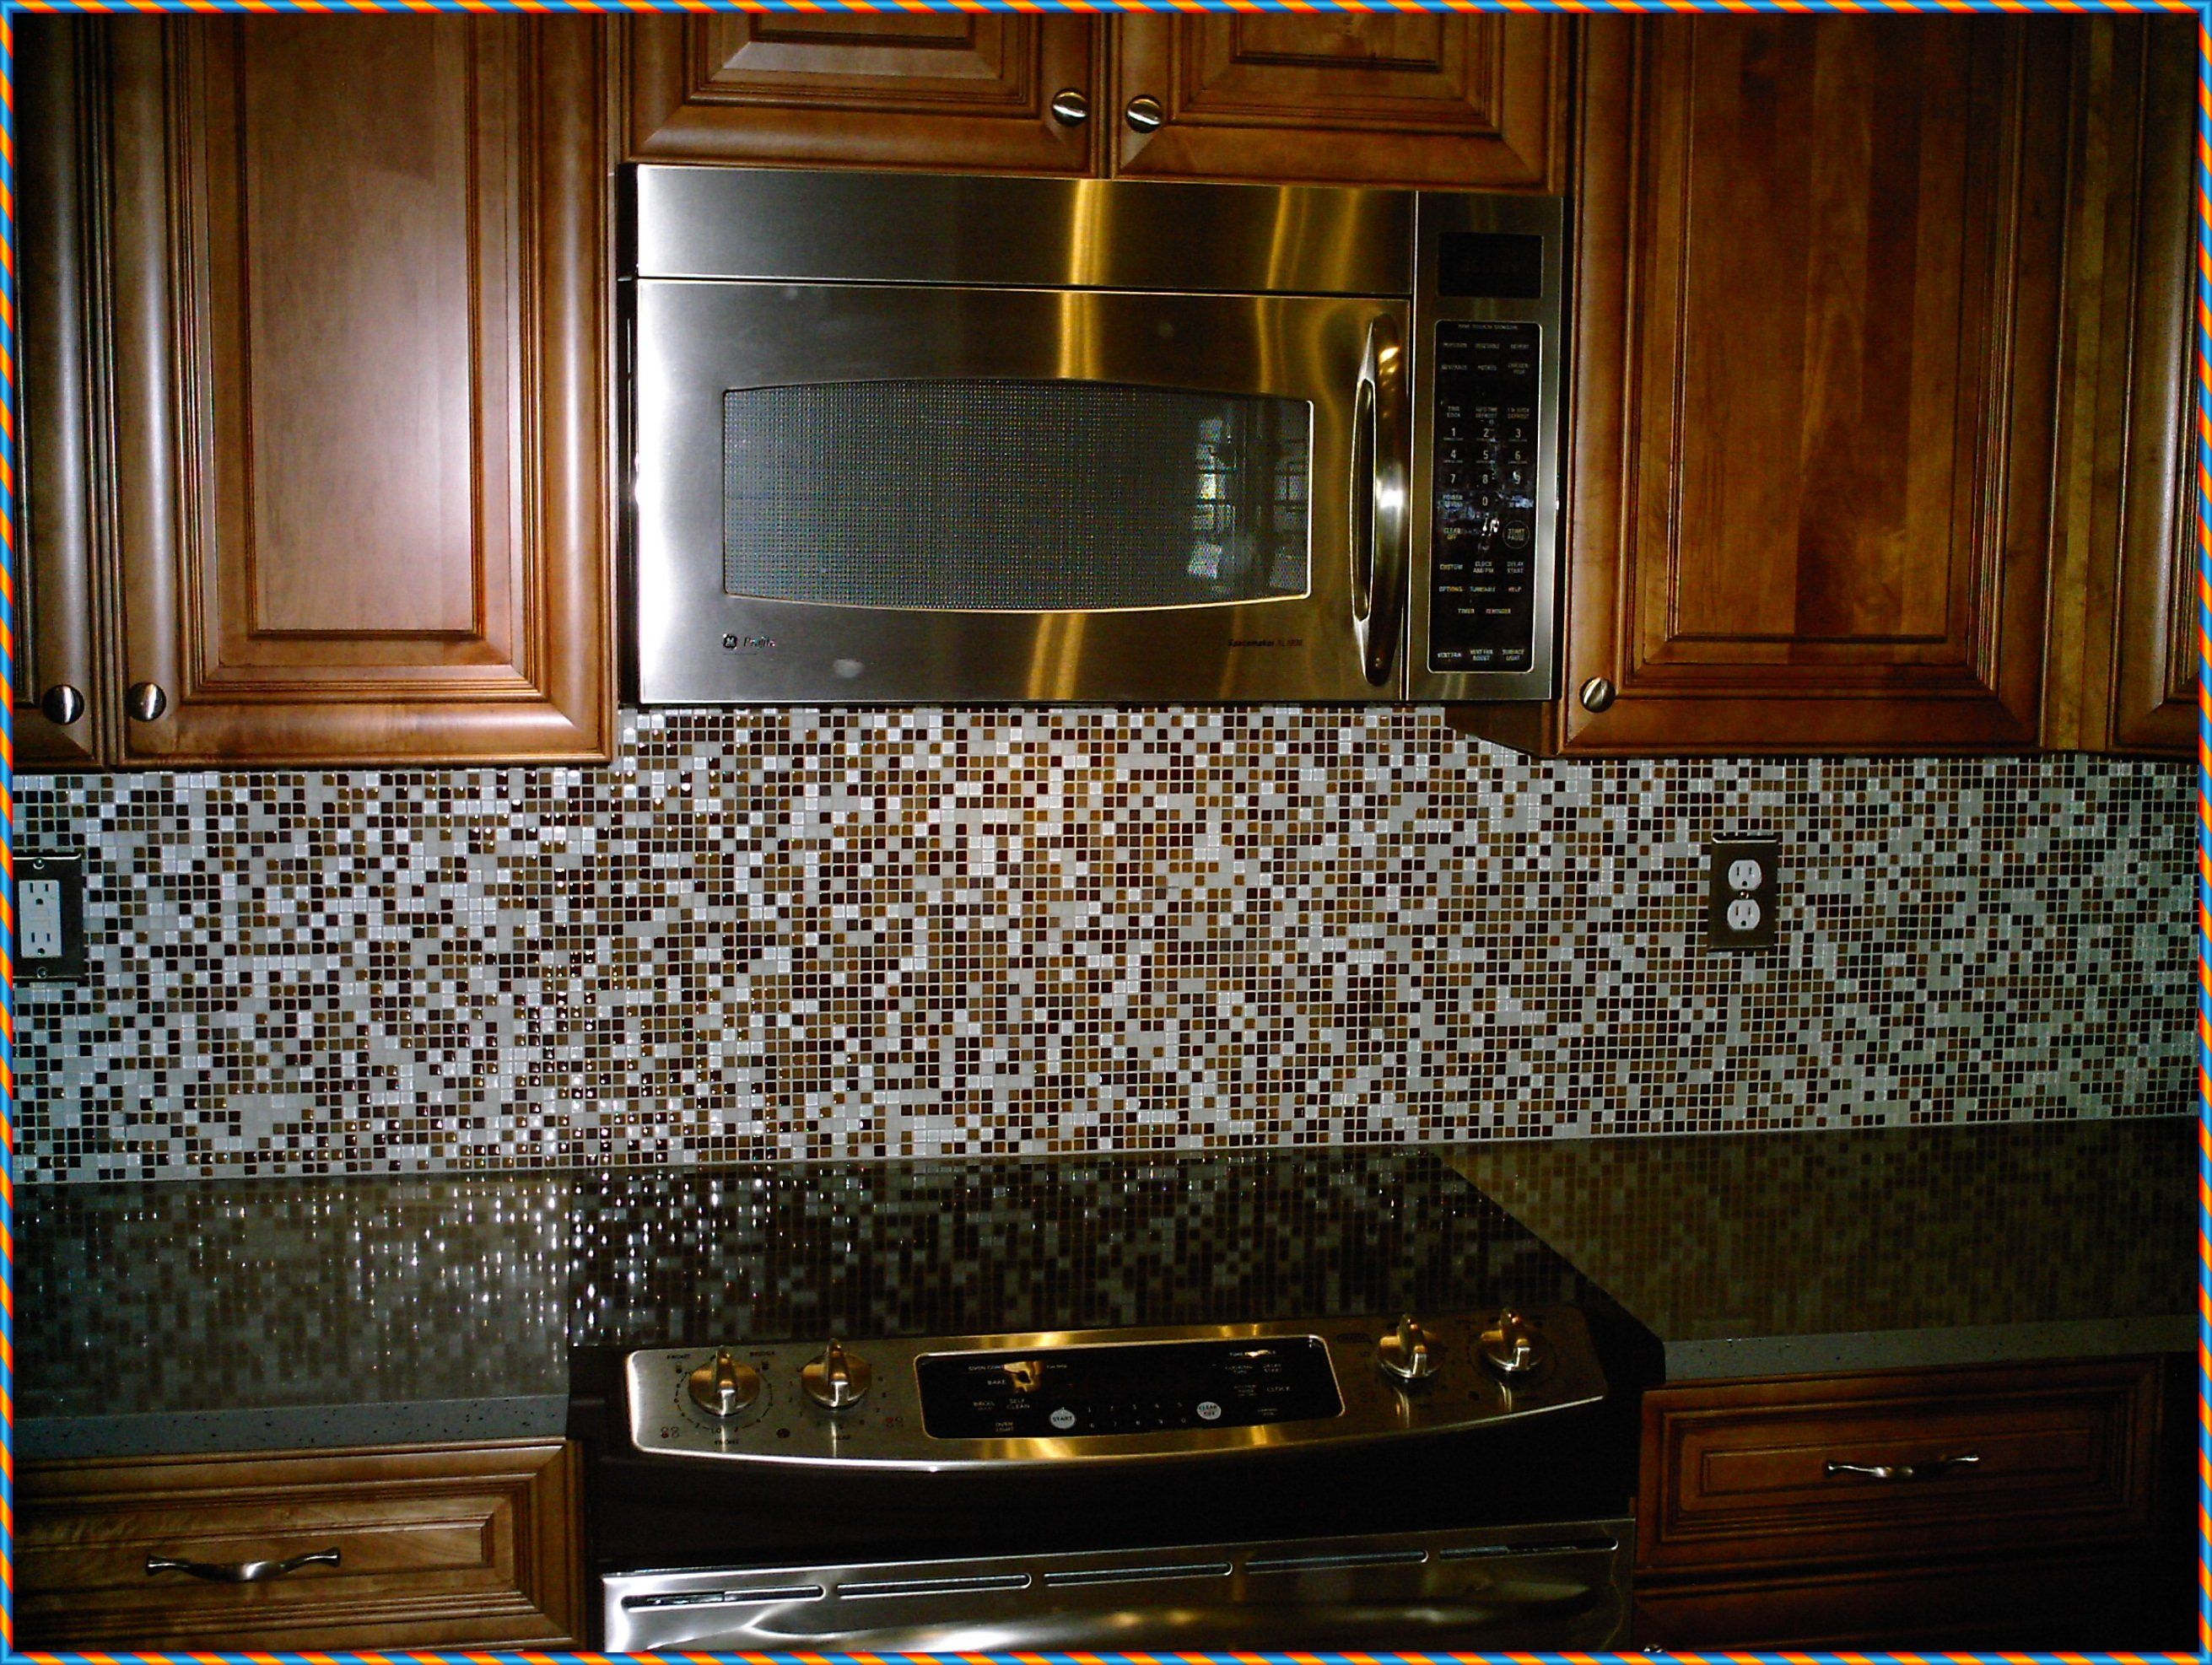 Best ideas about Mosaic Tile Backsplash Kitchen Ideas . Save or Pin Mosaic Tile Backsplash Kitchen Ideas Horner H&G Now.